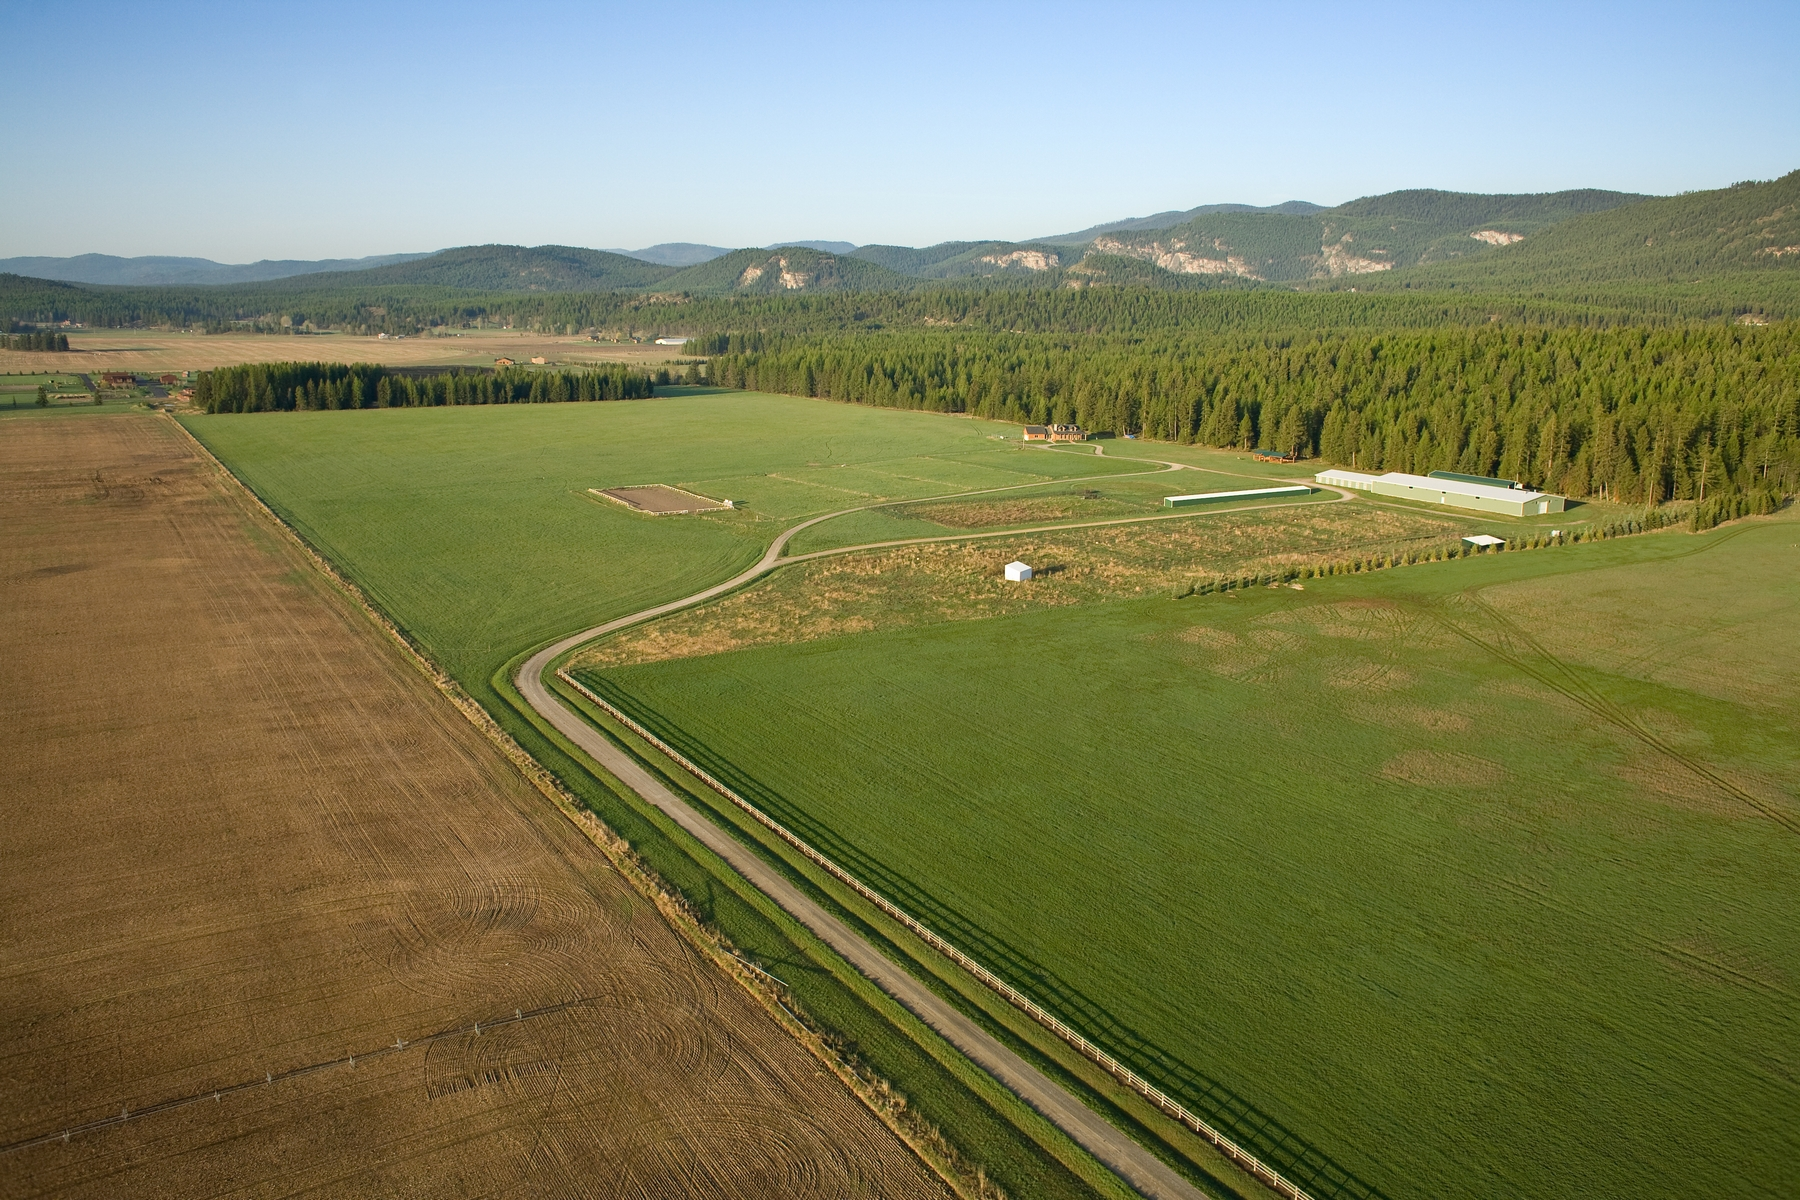 Land for Sale at 567 & 573 Twin Bridges Rd , Whitefish, MT 59937 567 & 573 Twin Bridges Rd Whitefish, Montana 59937 United States